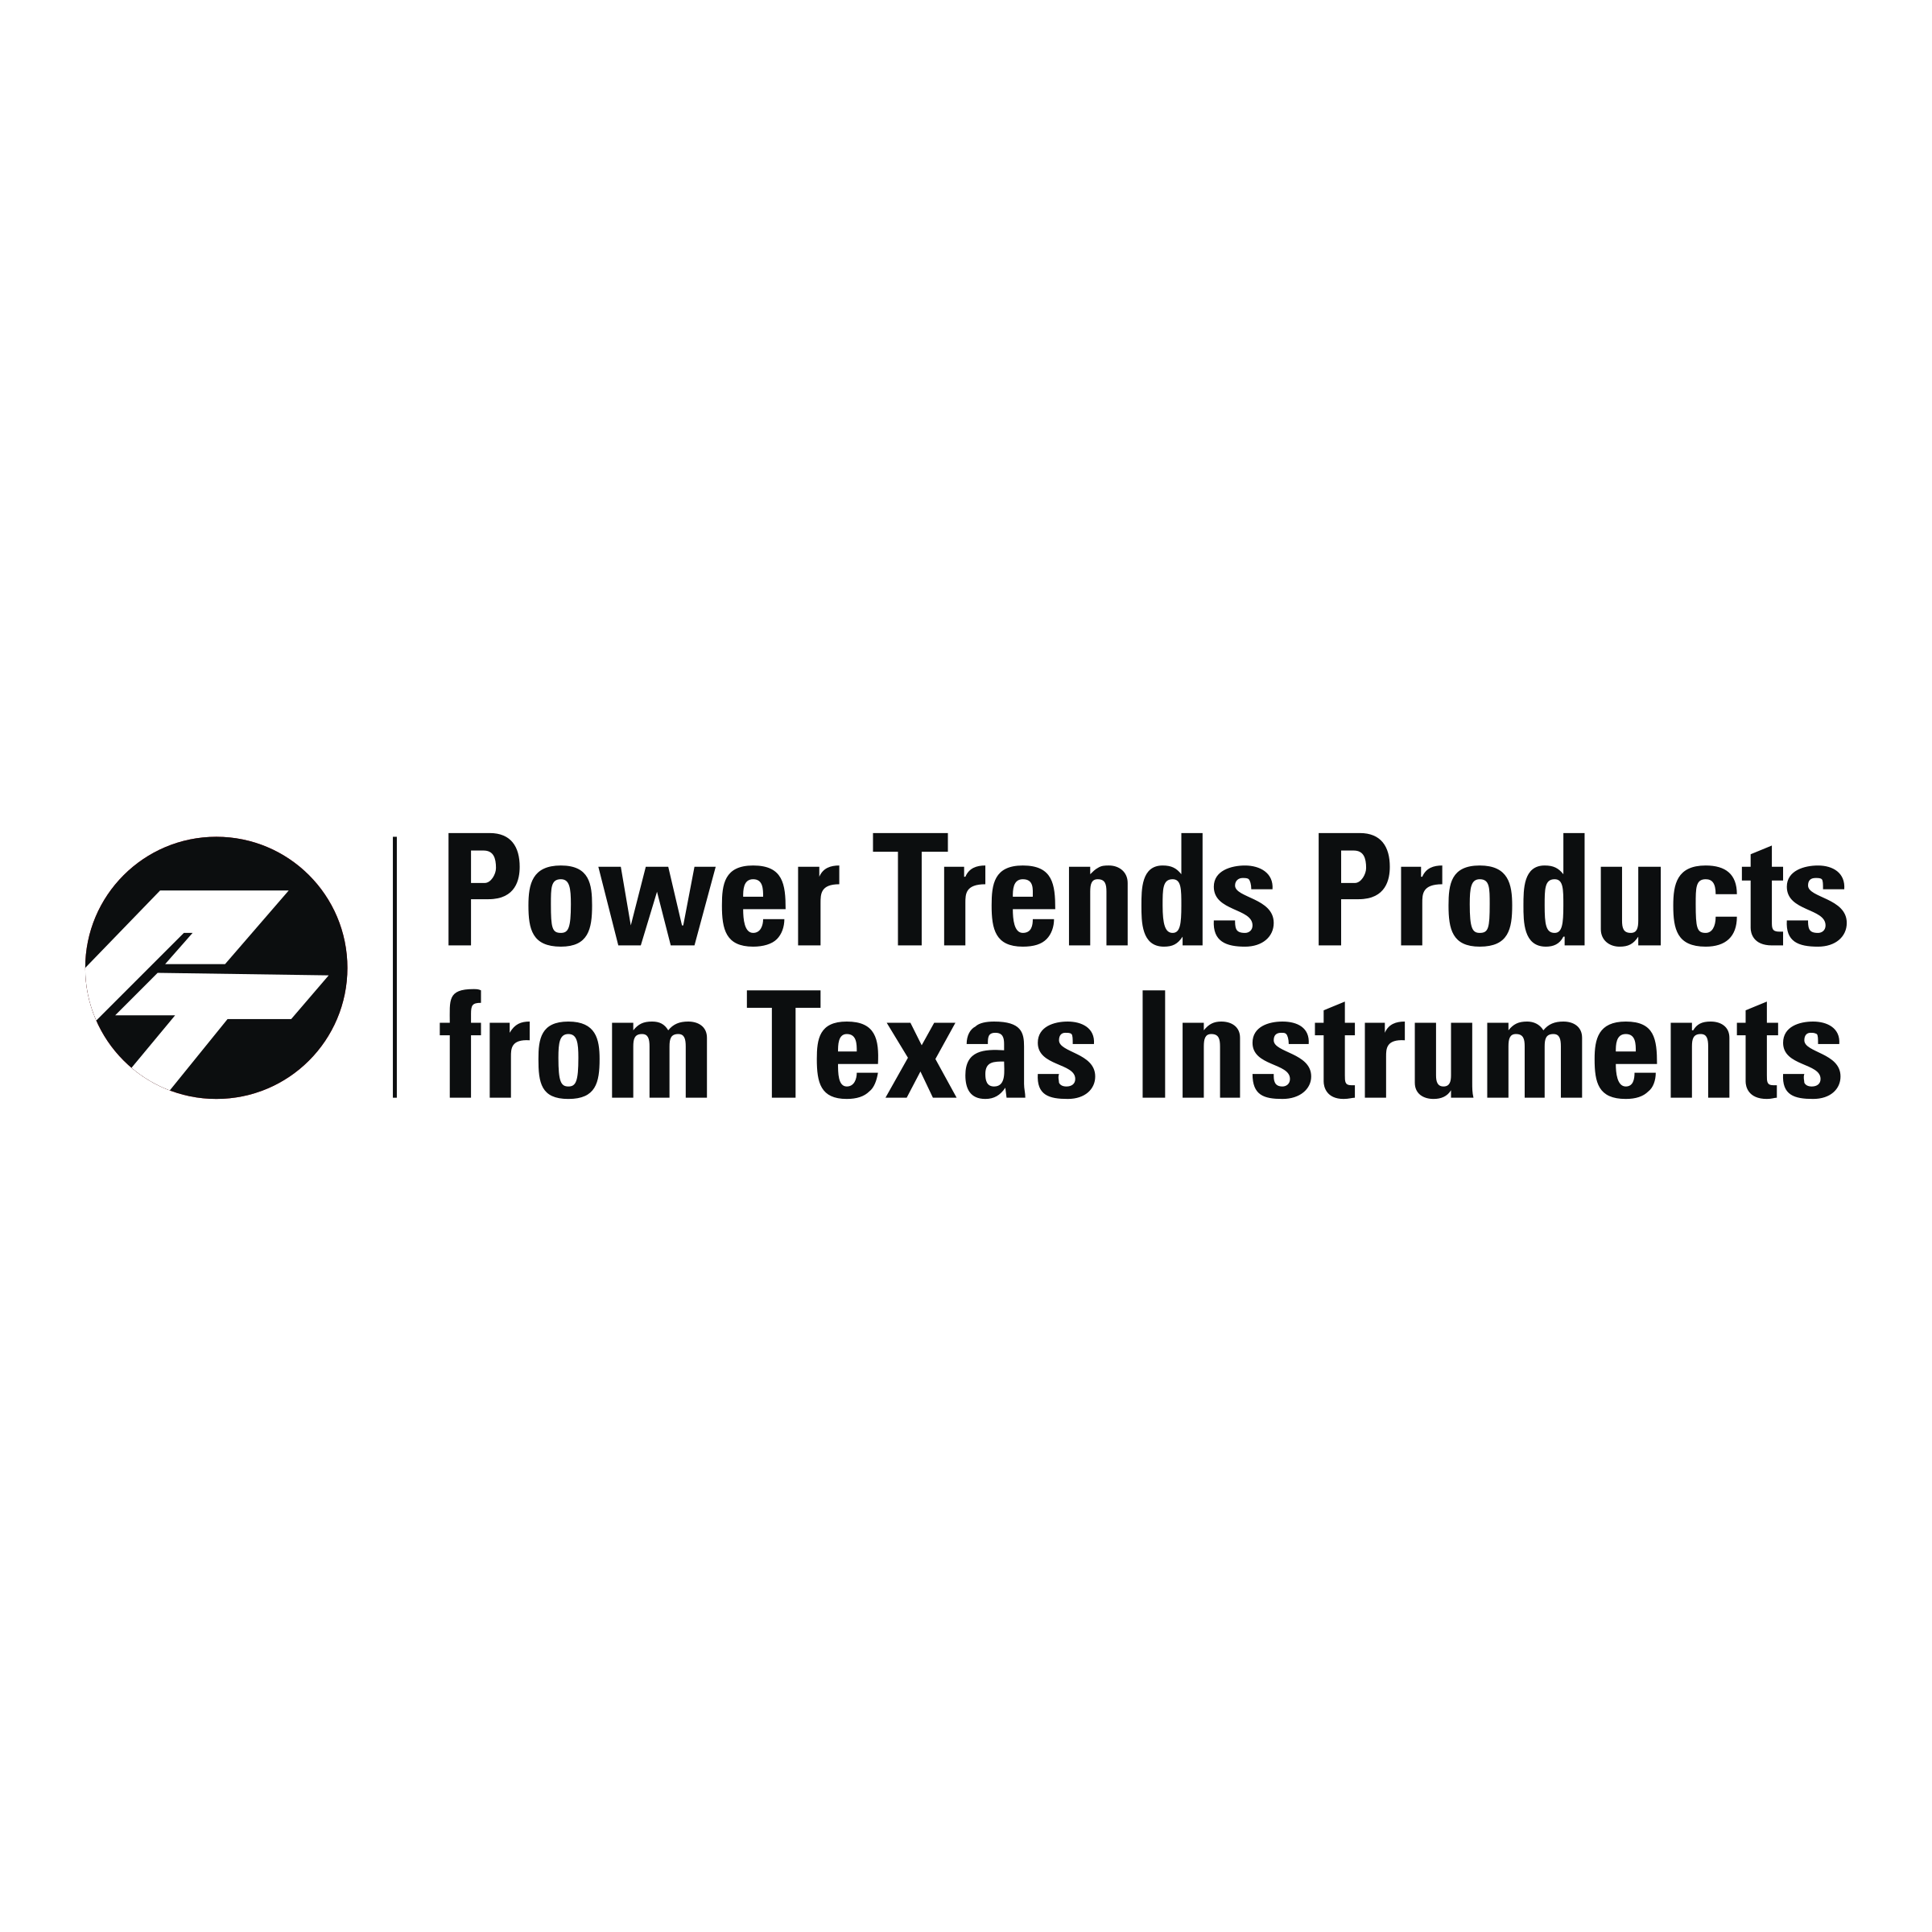 power trends products logo png transparent svg vector freebie supply